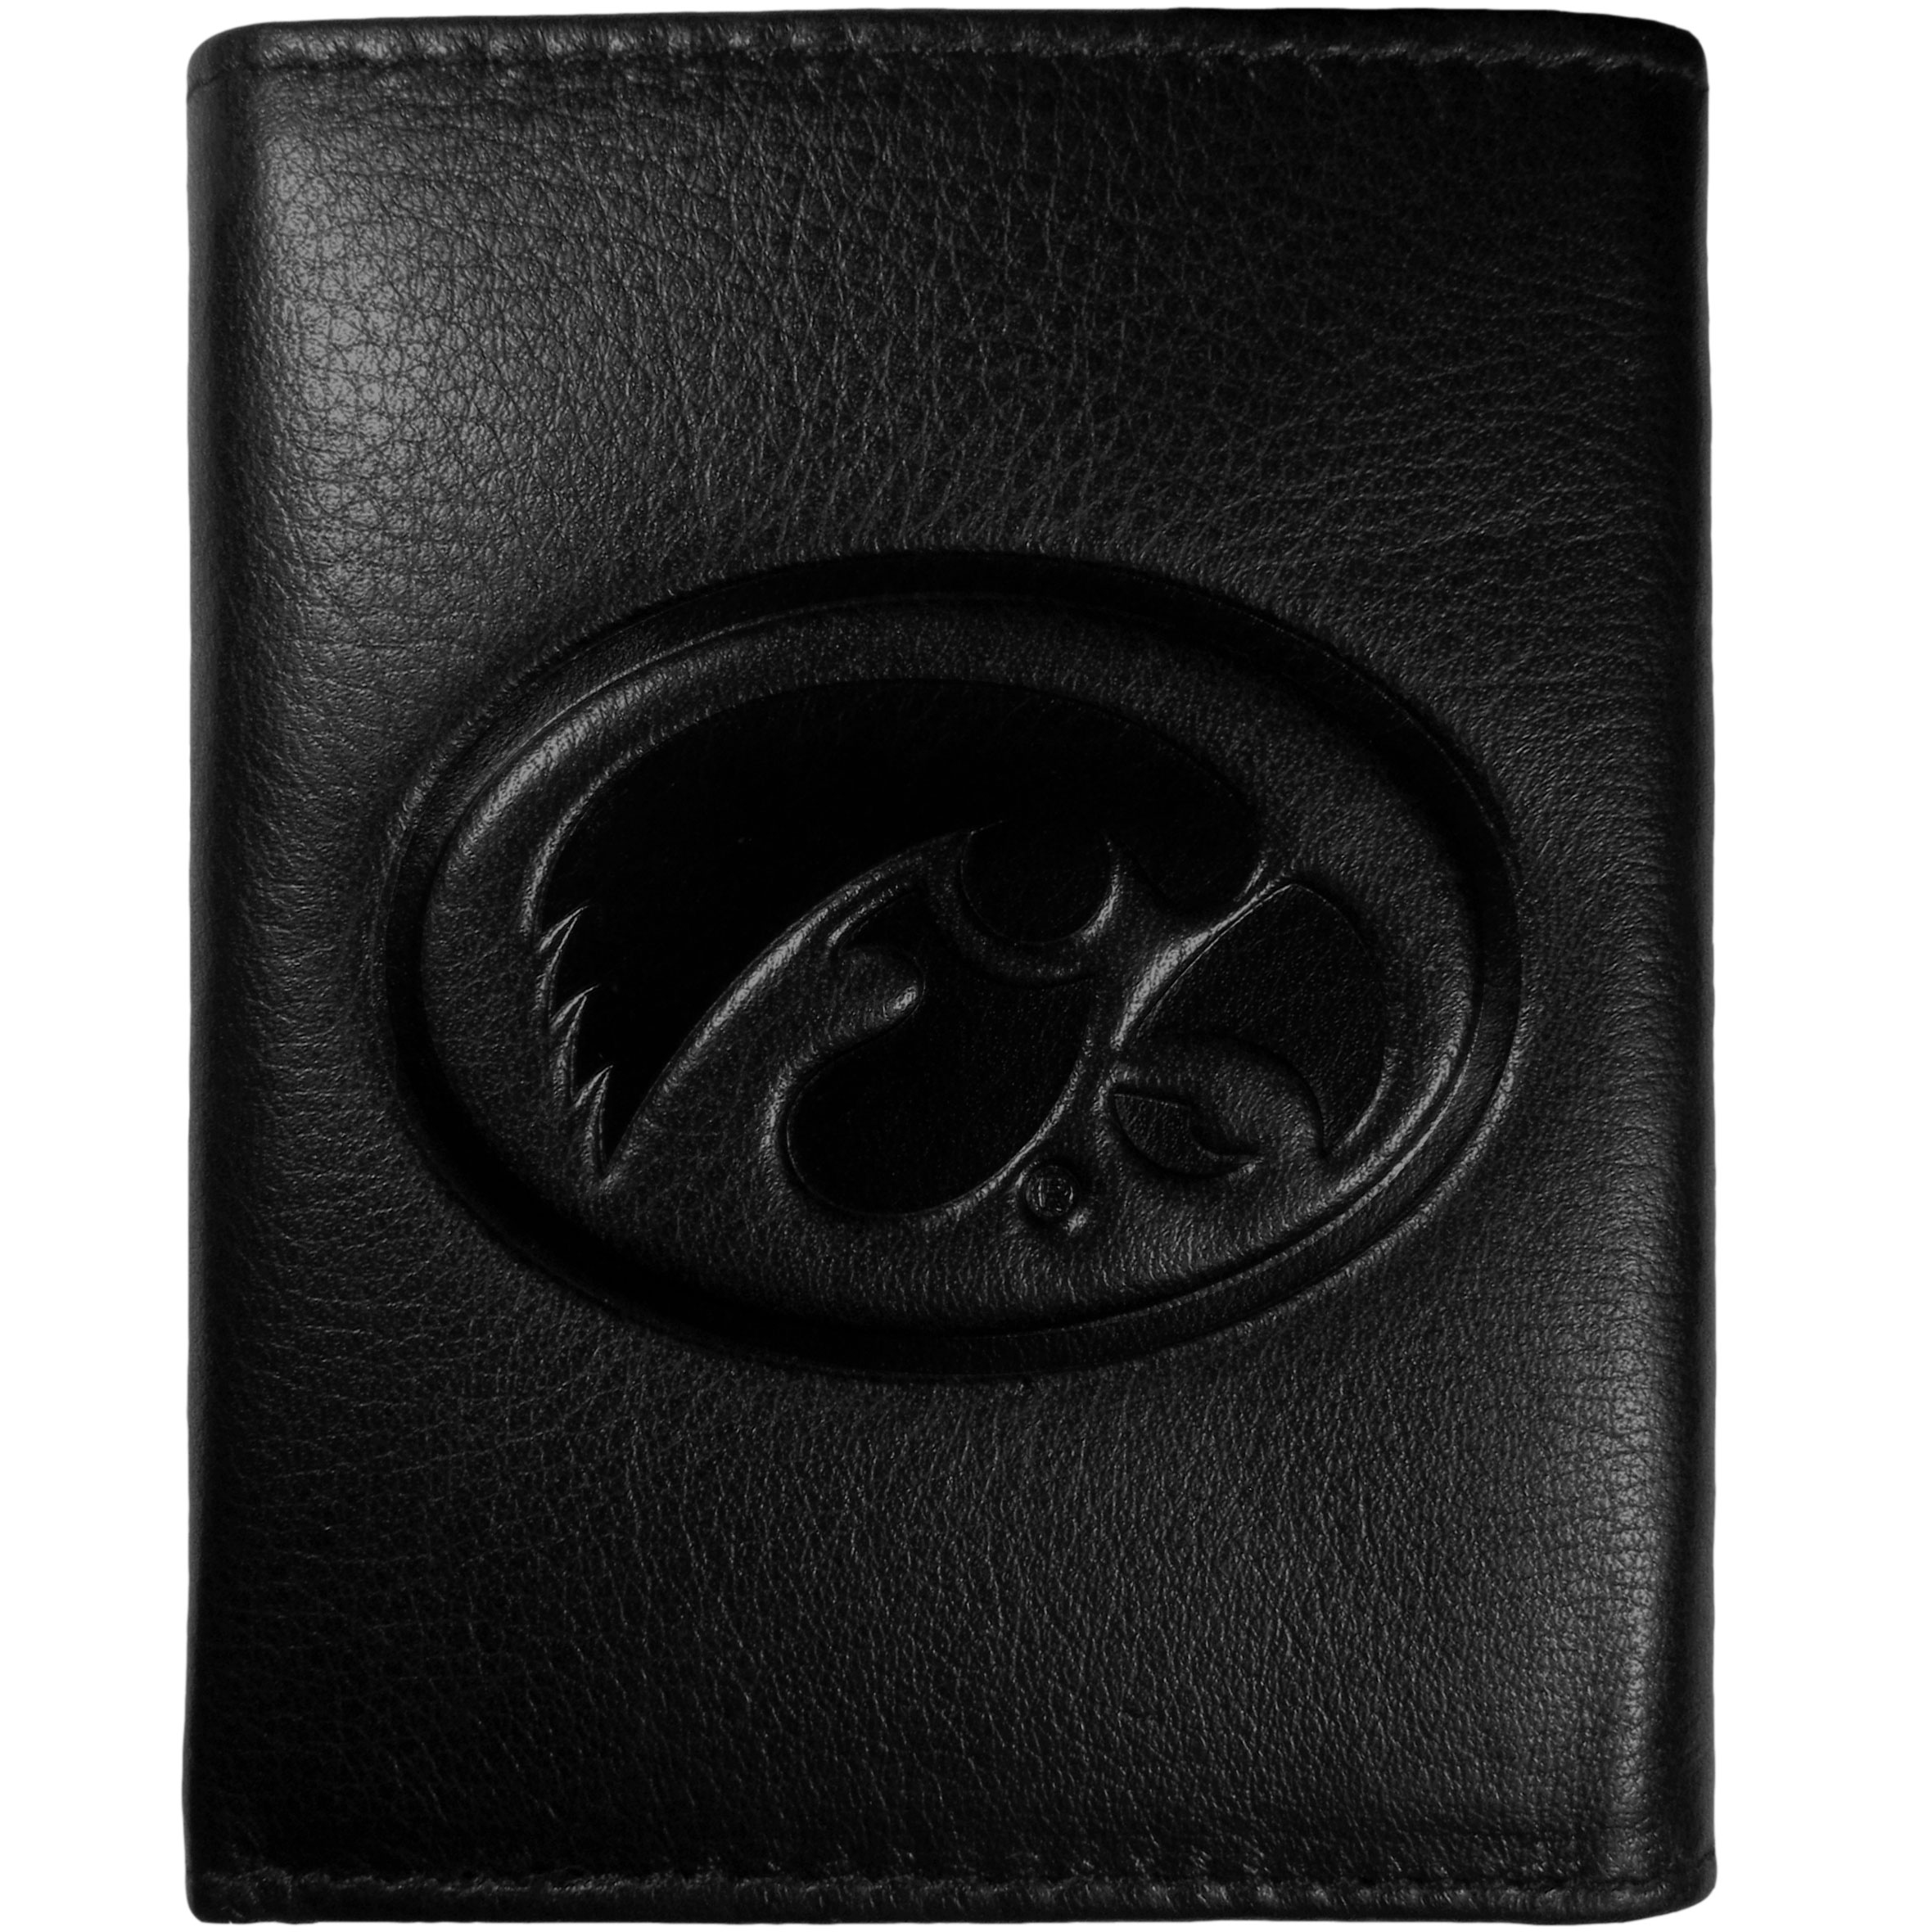 Iowa Hawkeyes Embossed Leather Tri-fold Wallet - This stylish leather wallet is made of high quality leather with a supple feel and classic look. The front of the tri-fold style wallet has a deeply embossed Iowa Hawkeyes logo. The billfold is packed with features that will allow to keep organized, lots of credit card slots, windowed ID slot, large pockets for bills and a removable sleeve with extra slots for even more storage. This is a must-have men's fashion accessory that would make any fan very proud to own.